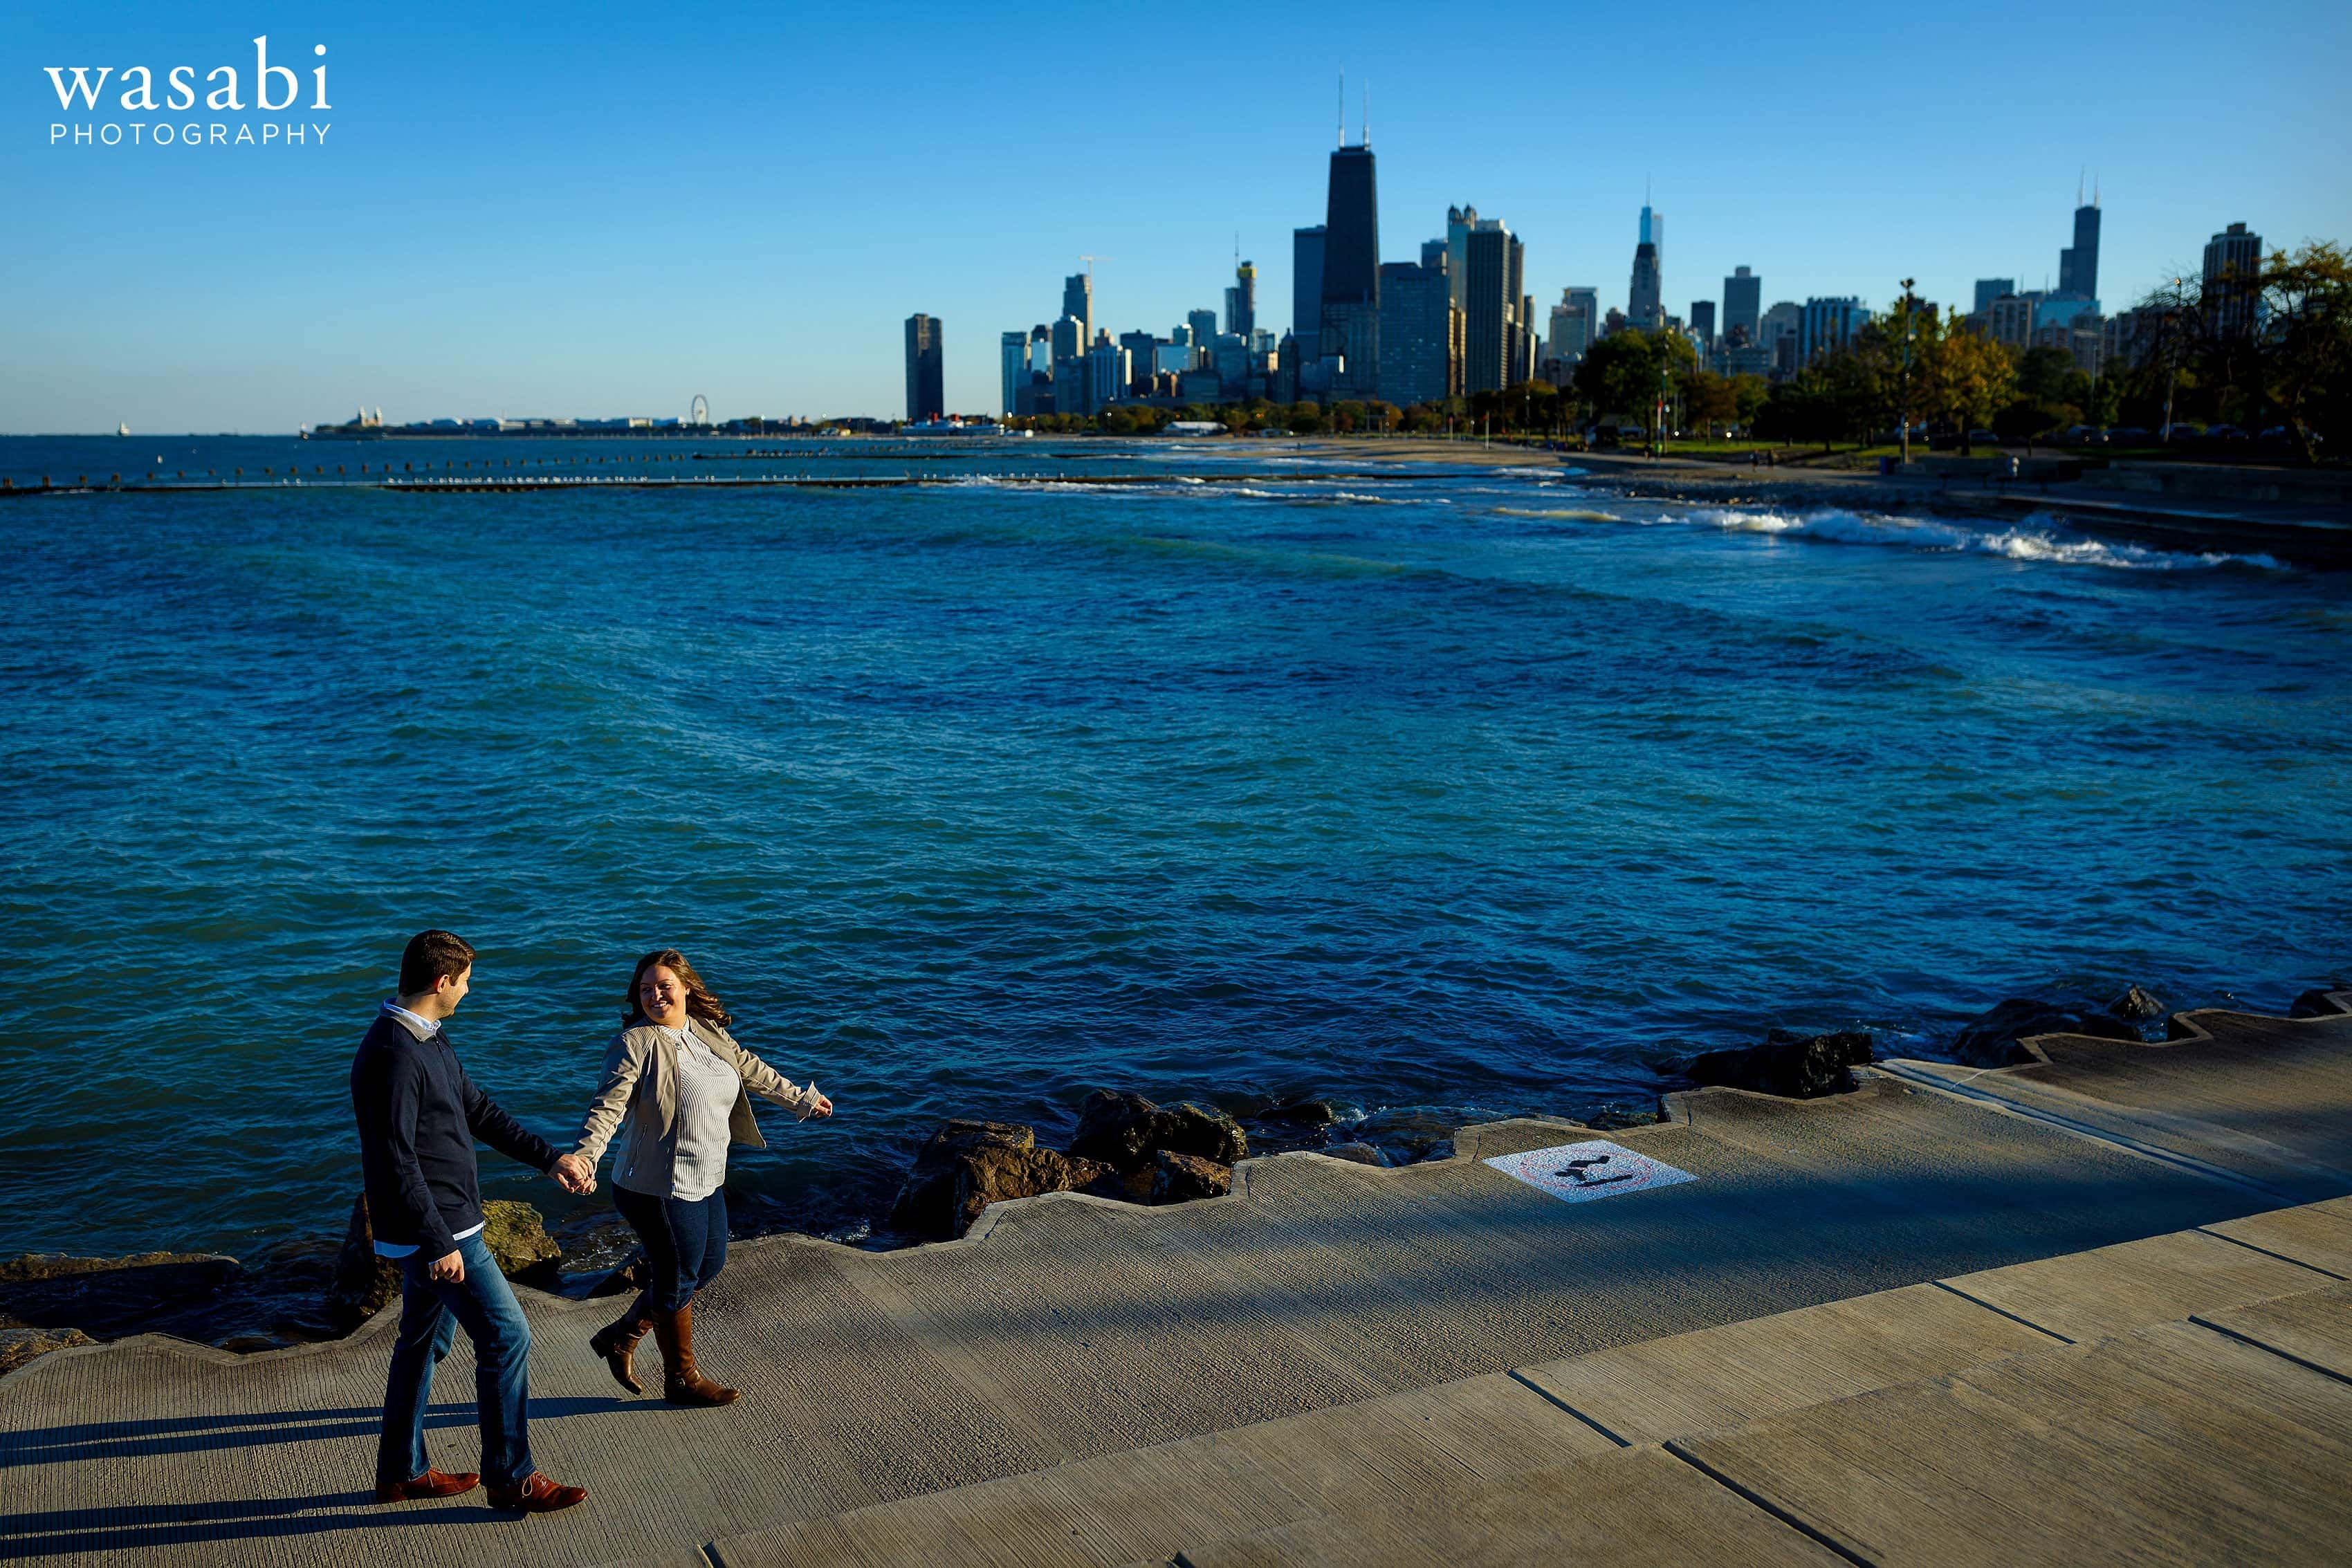 couple walks along the Lake Michigan waterfront with Chicago Skyline in the background at Fullerton Ave. Beach